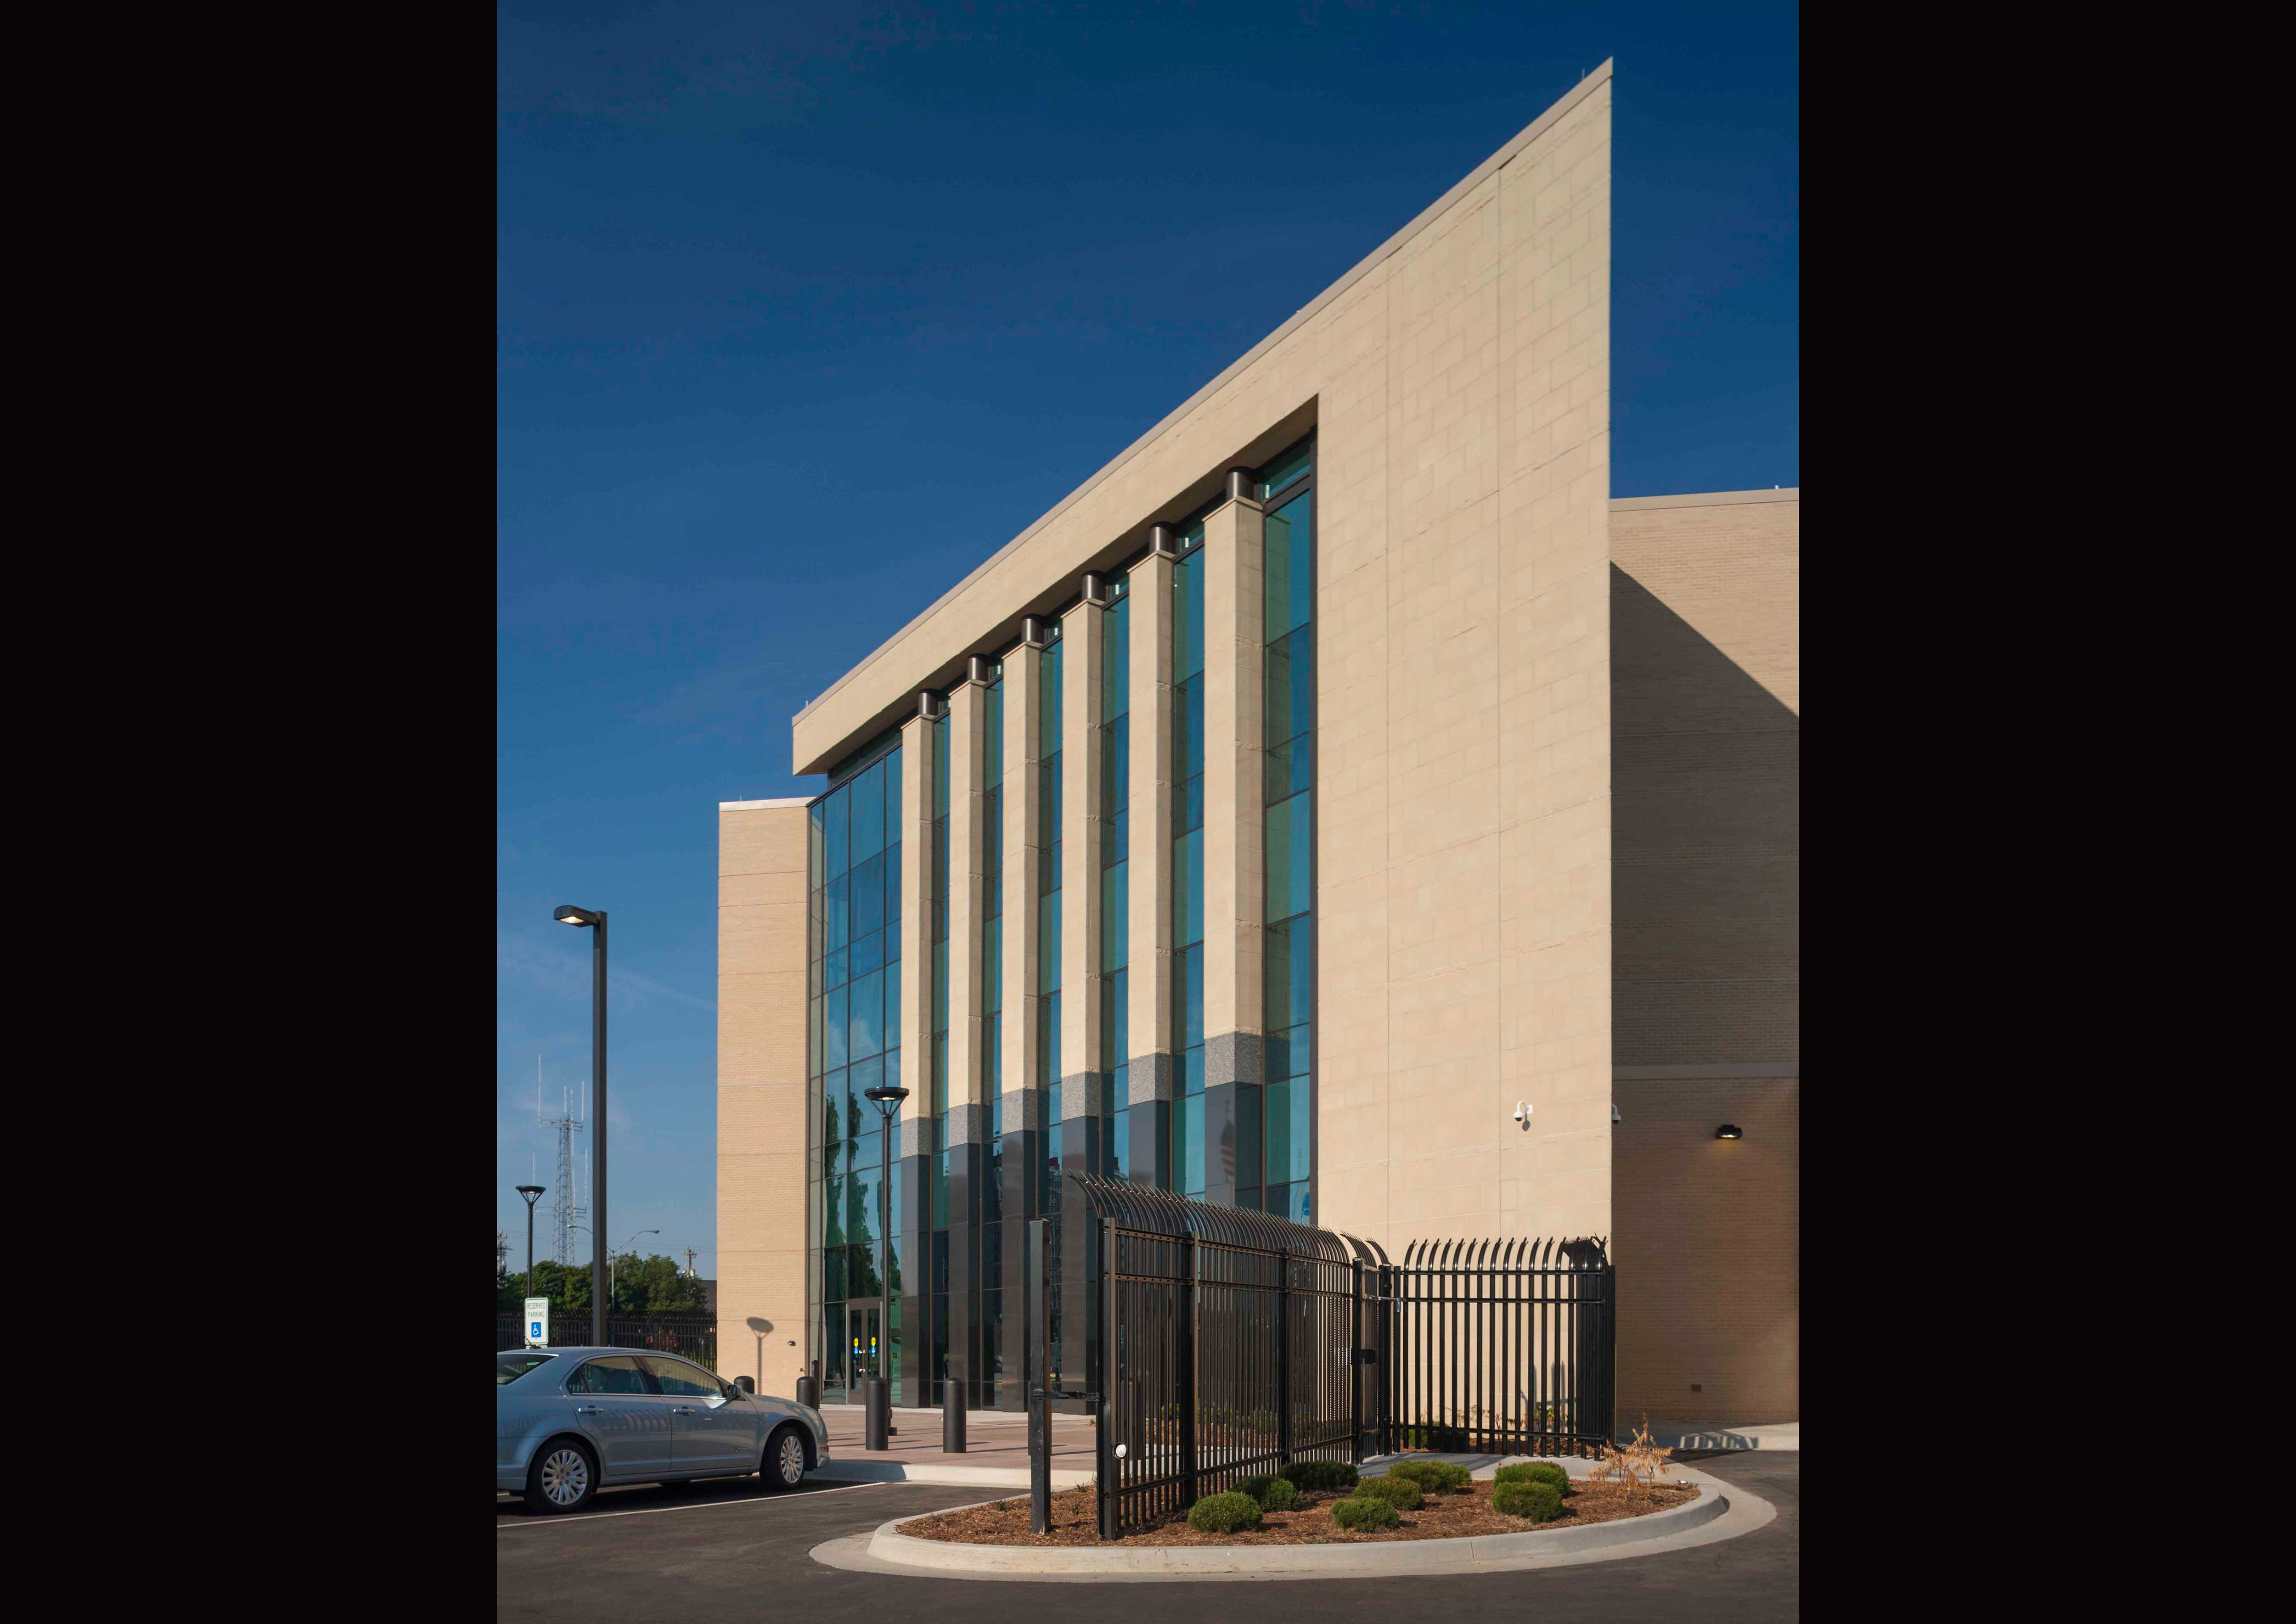 US Attorney's Office in Muskogee, Oklahoma is complete!